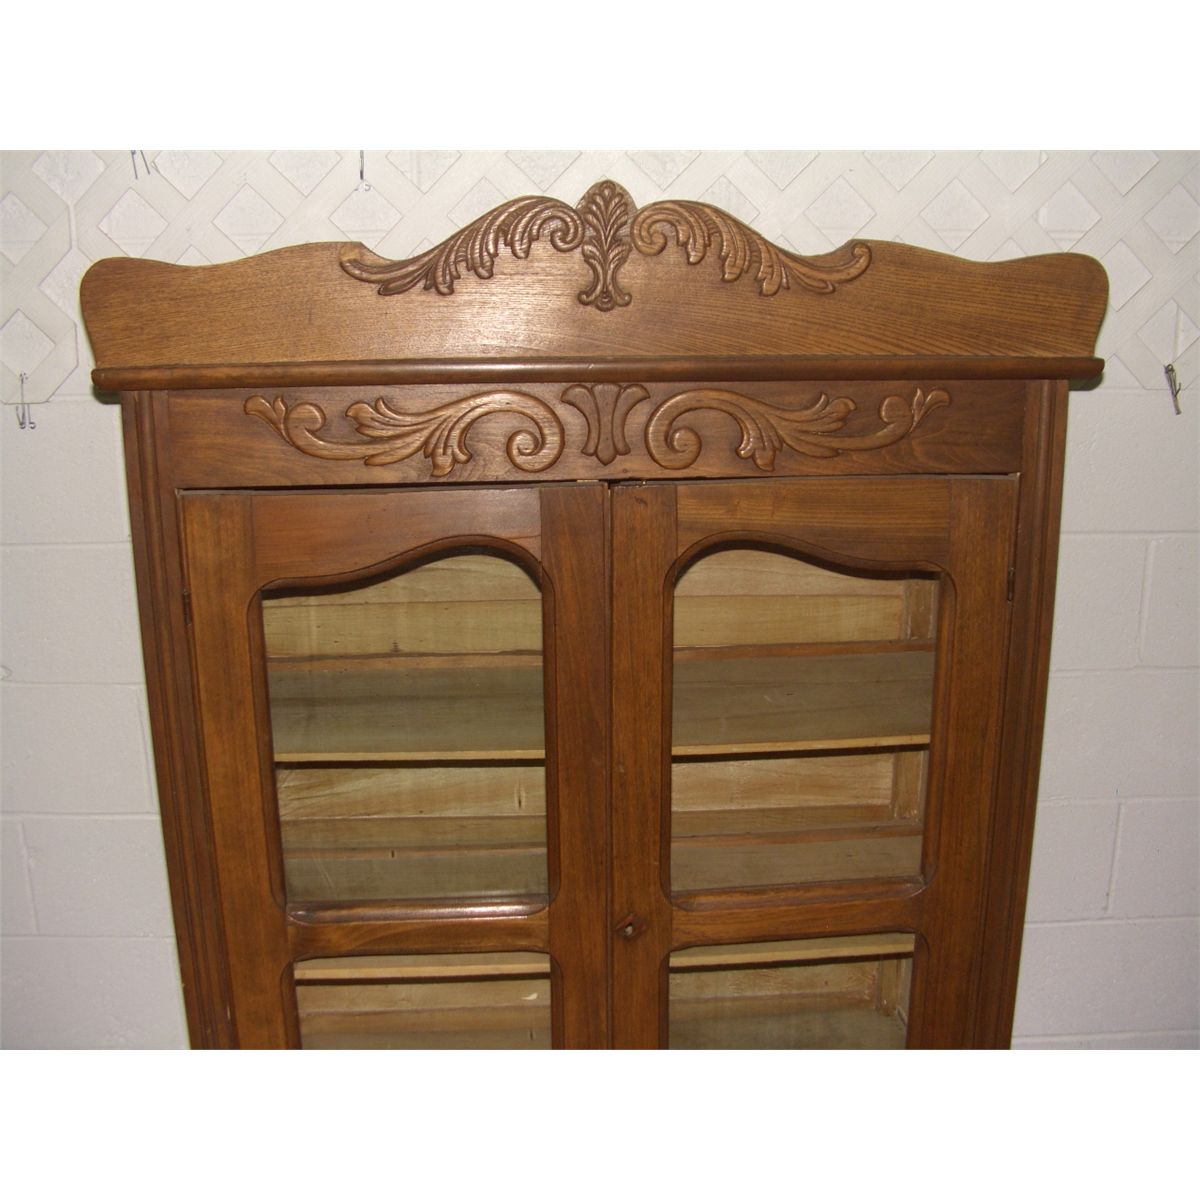 Wonderful image of Image 2 : nice antique oak? kitchen cabinet with applied carving SSR with #482813 color and 1200x1200 pixels